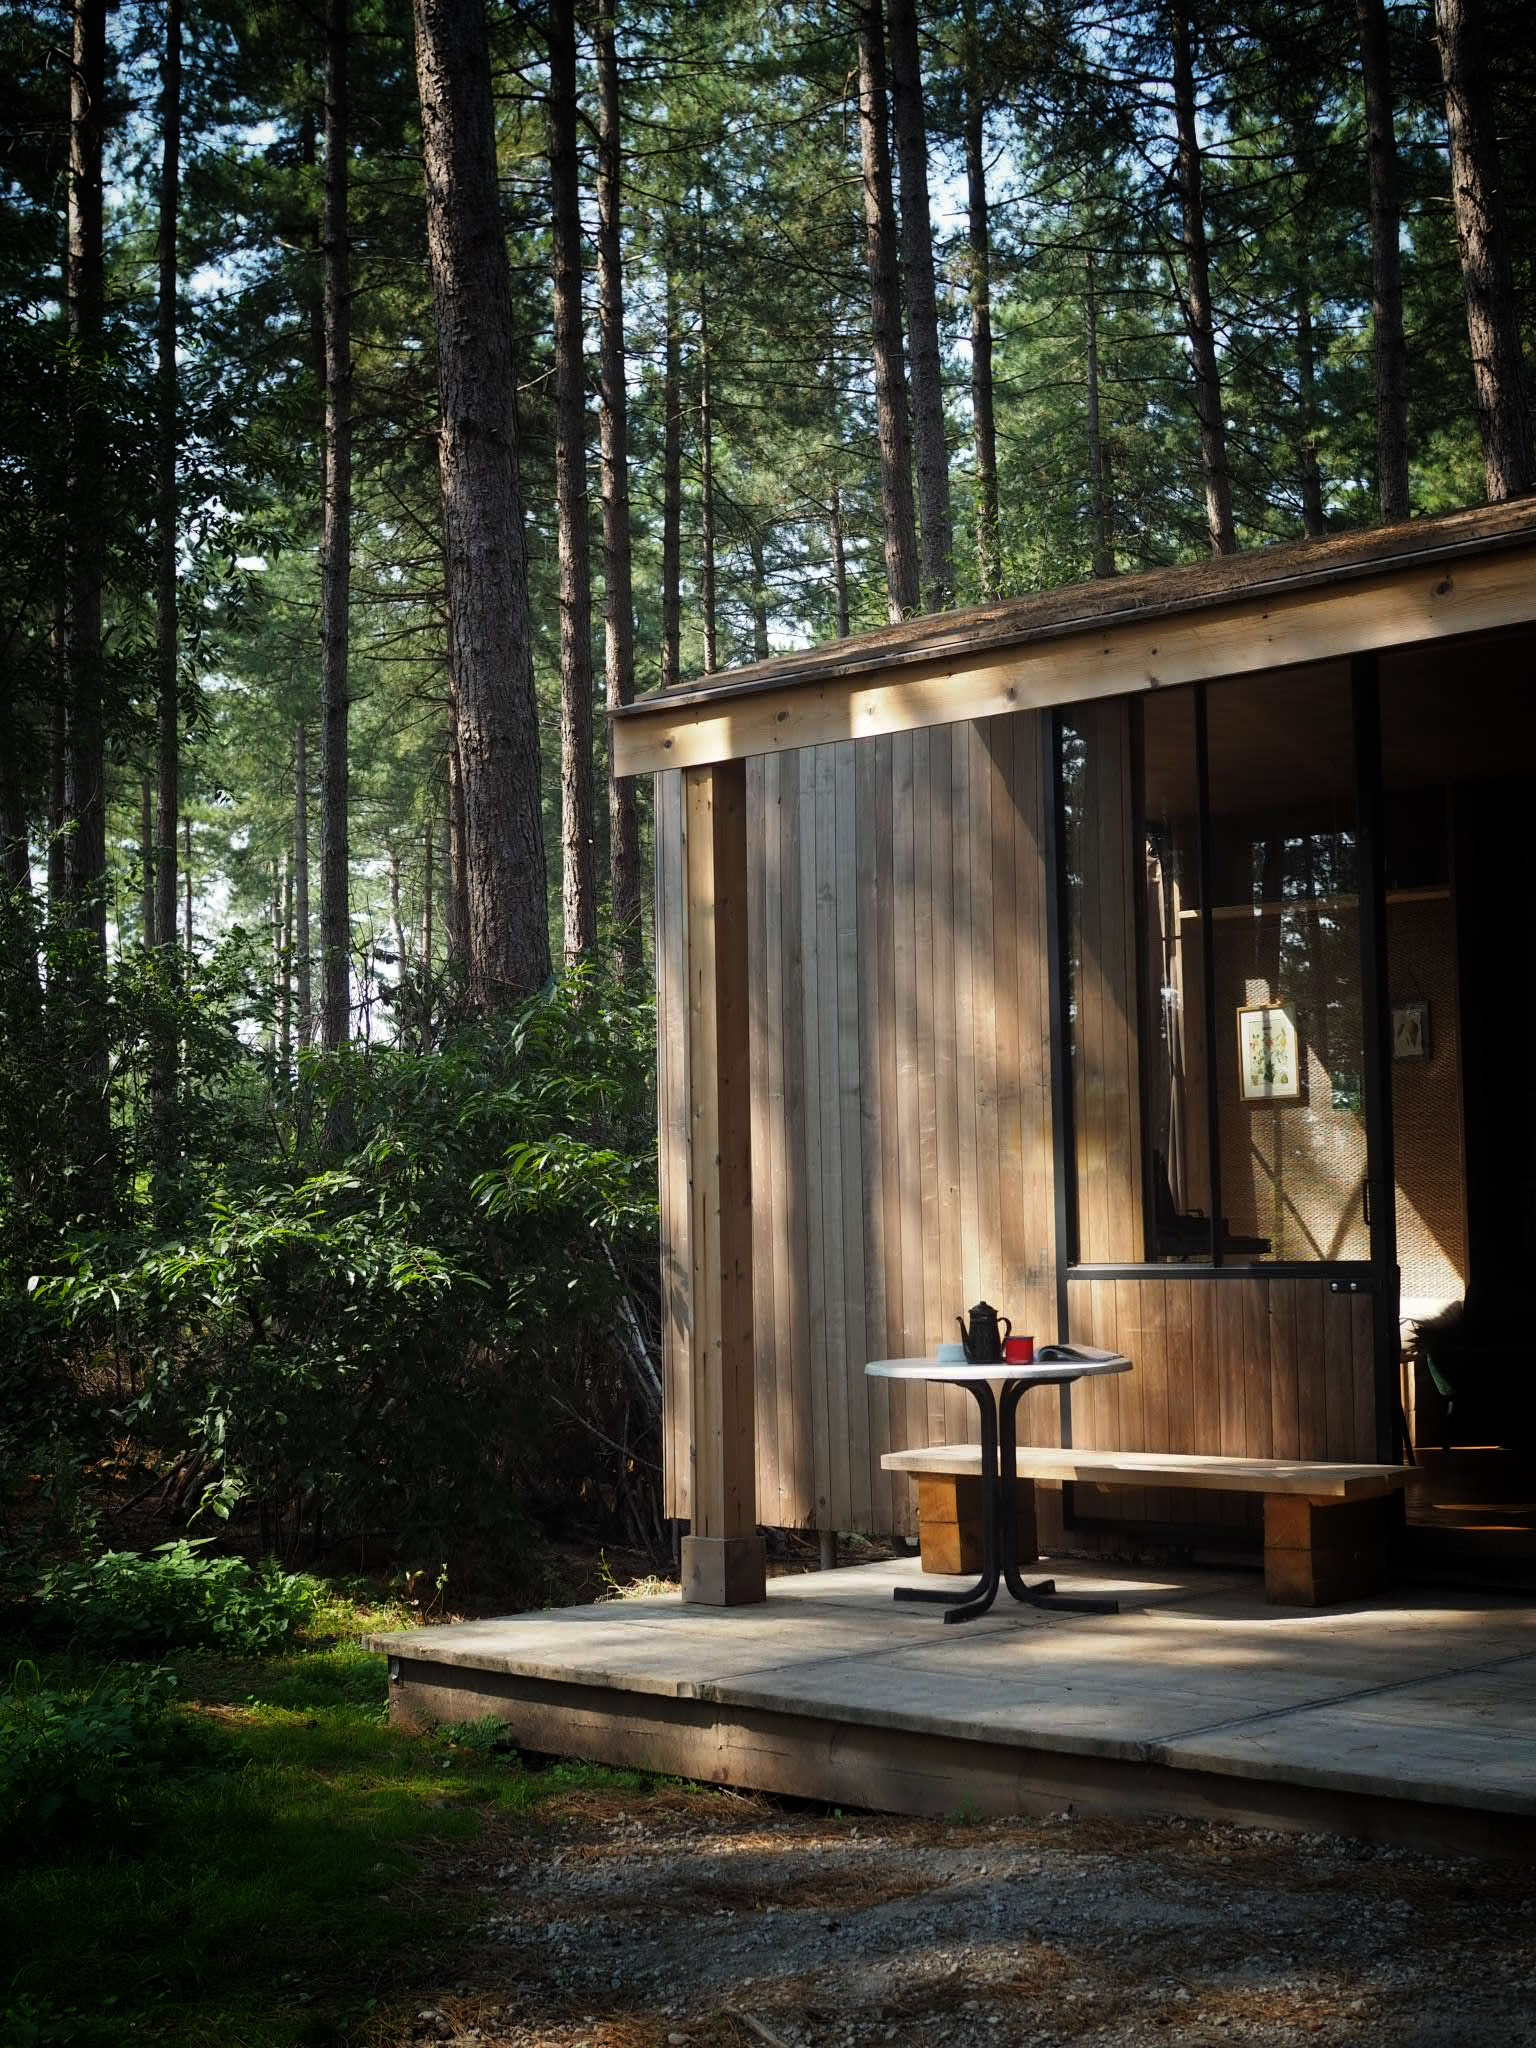 Our own slice of Scandi cabin heaven for the week